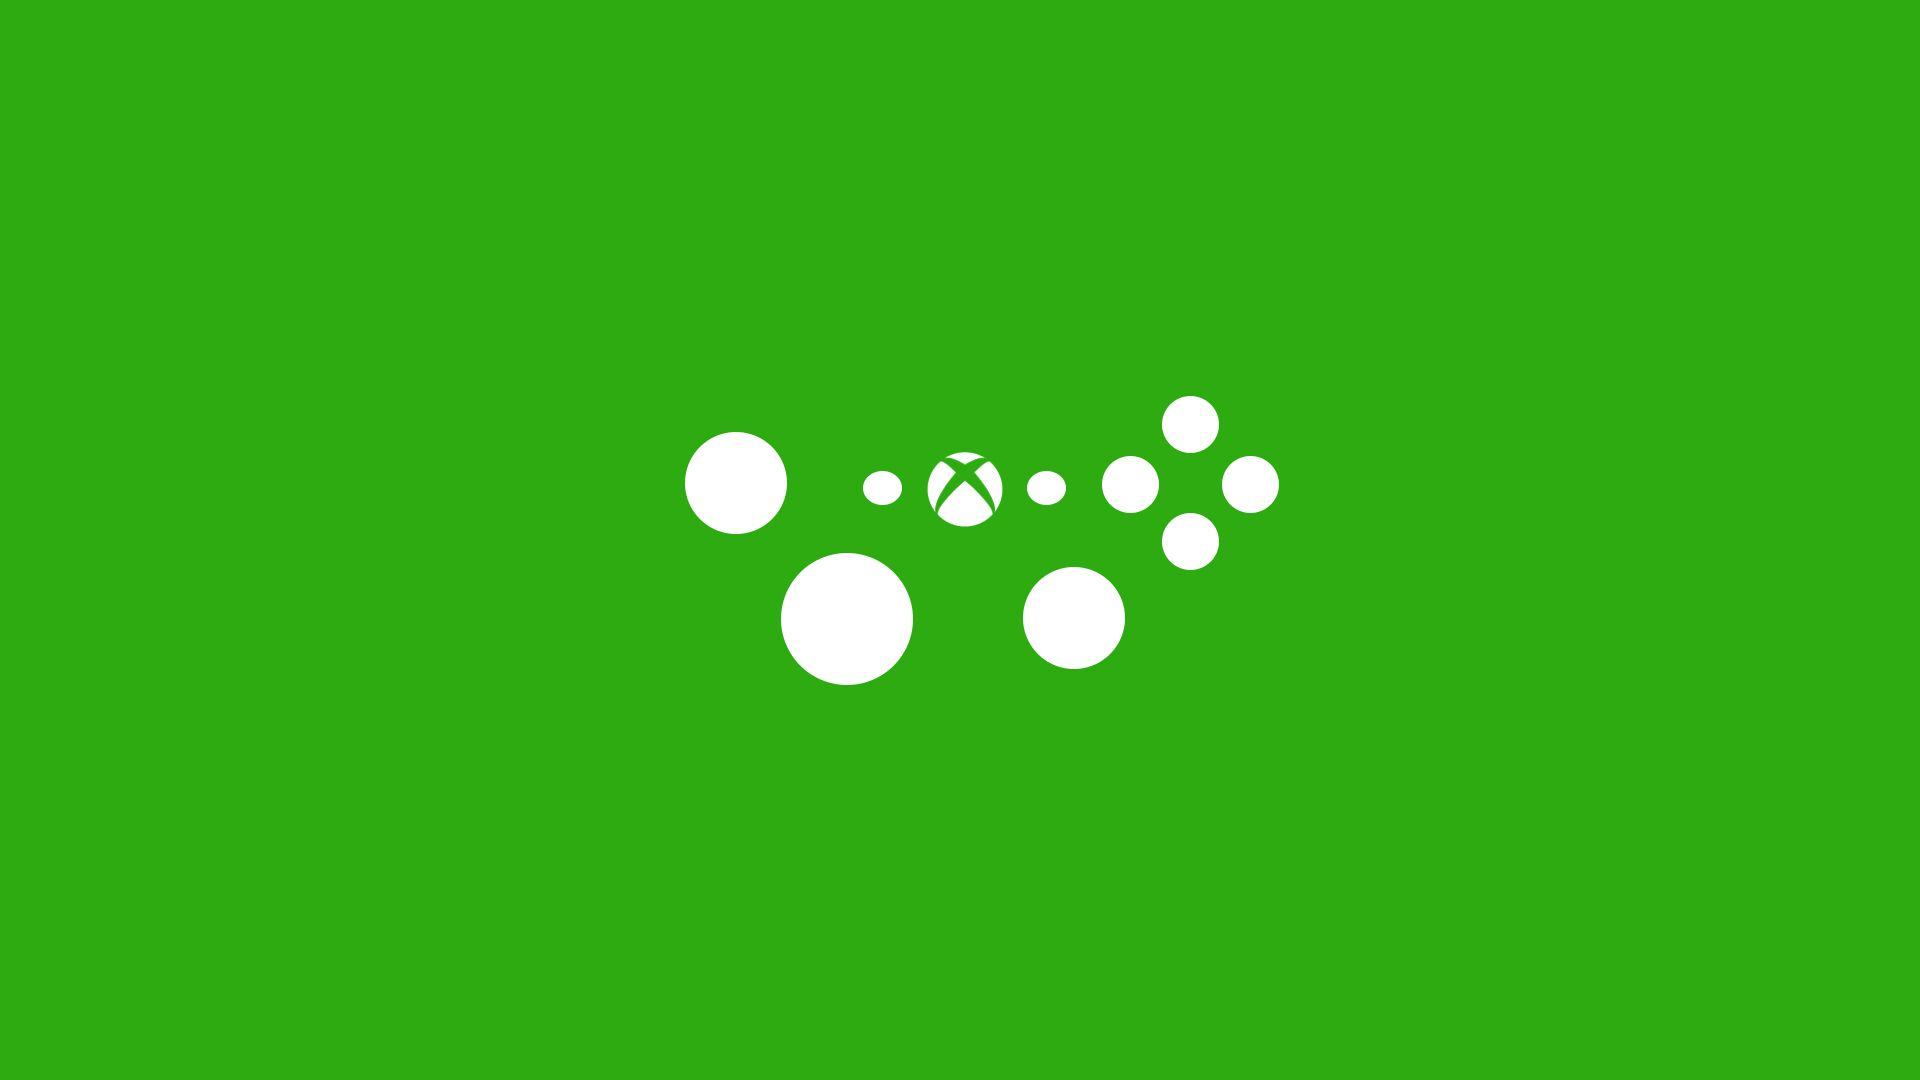 xbox controller iphone plus wallpaper 1920×1080 xbox wallpaper (35